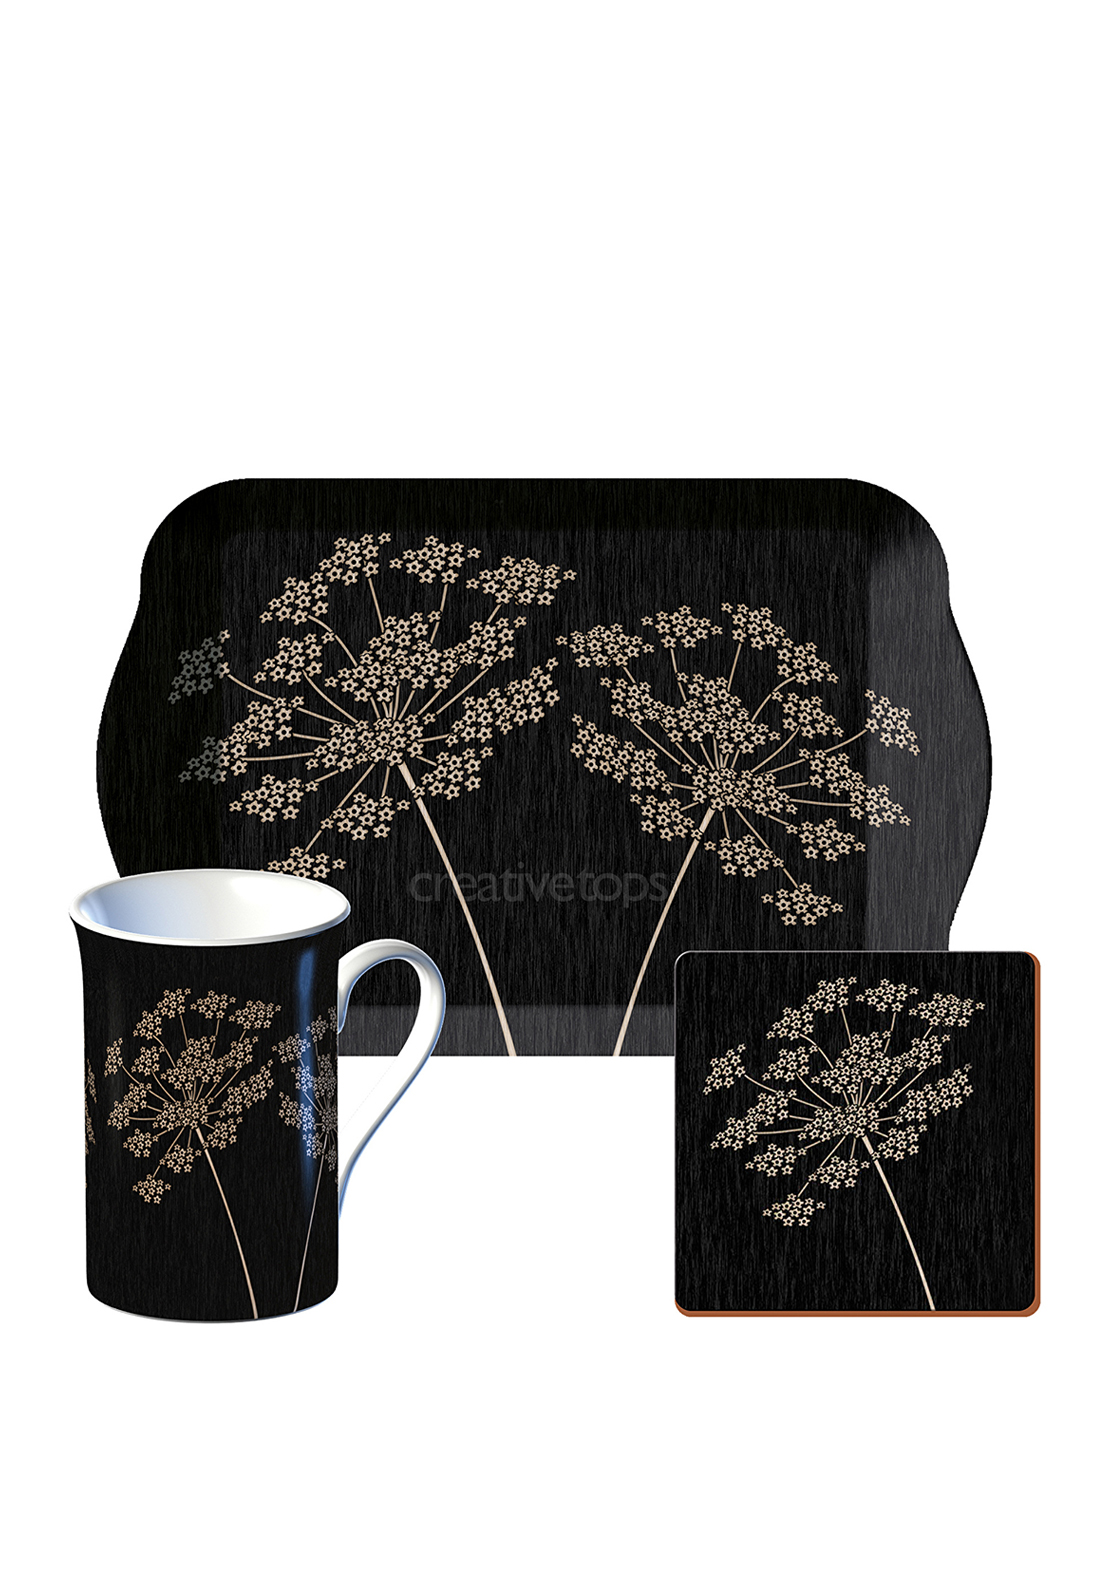 Creative Tops Time for Tea Gift Set Silhouette